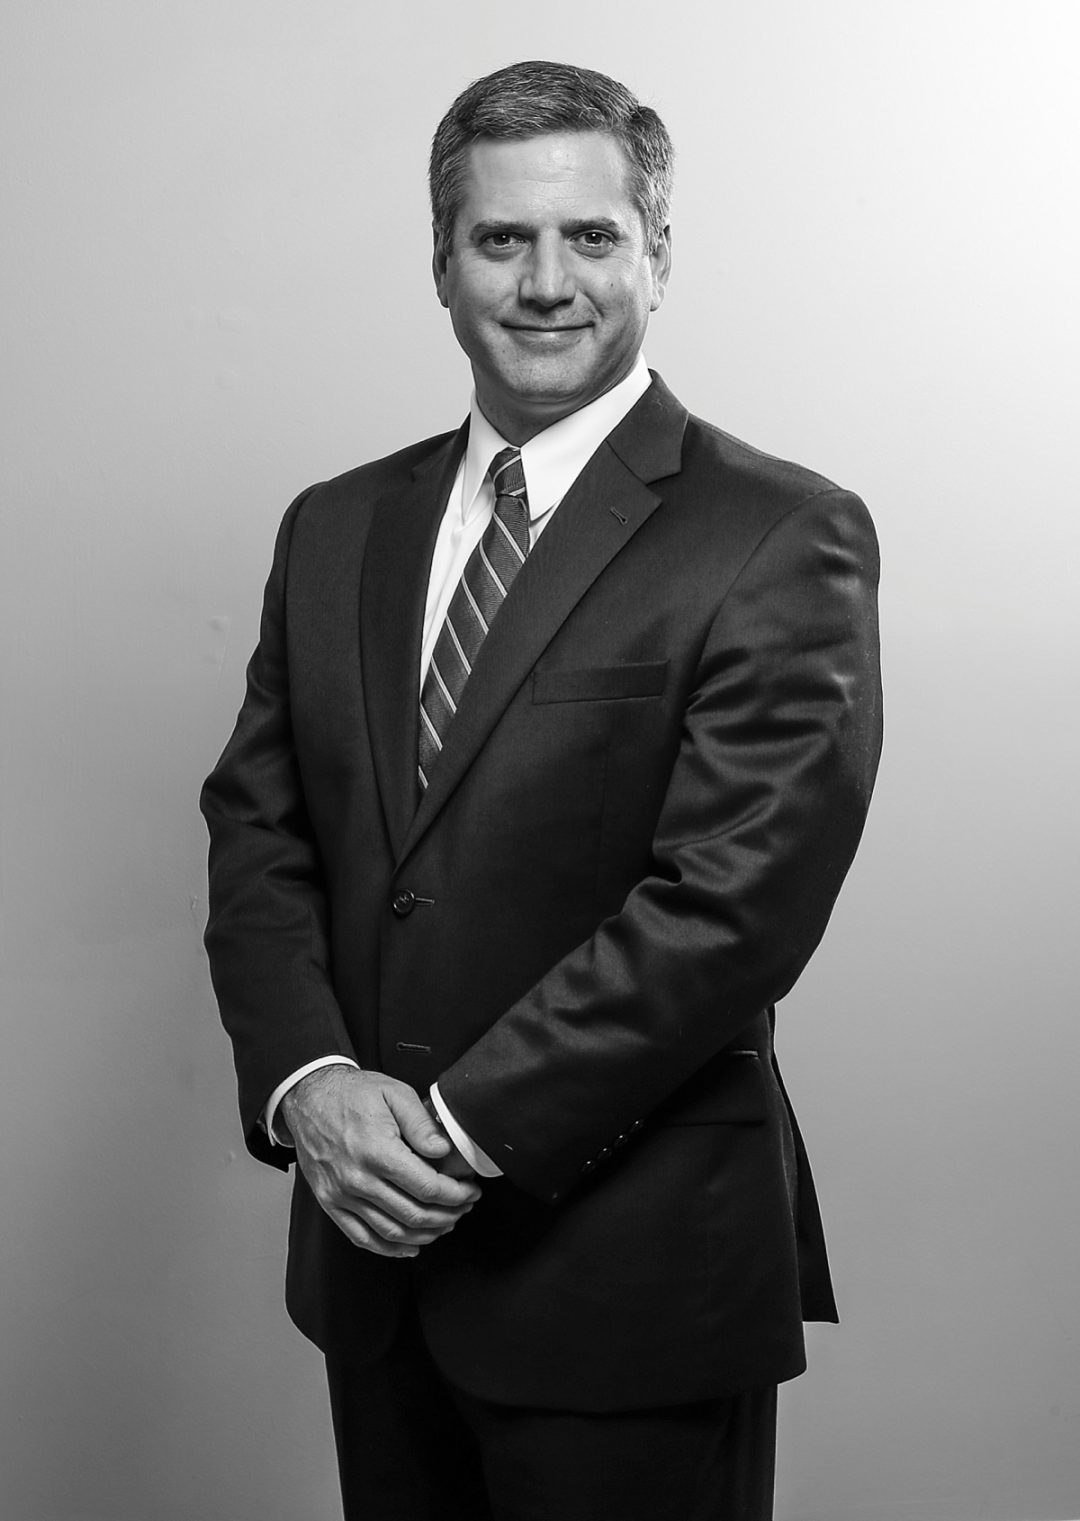 Corporate Portraits by Keith Cephus